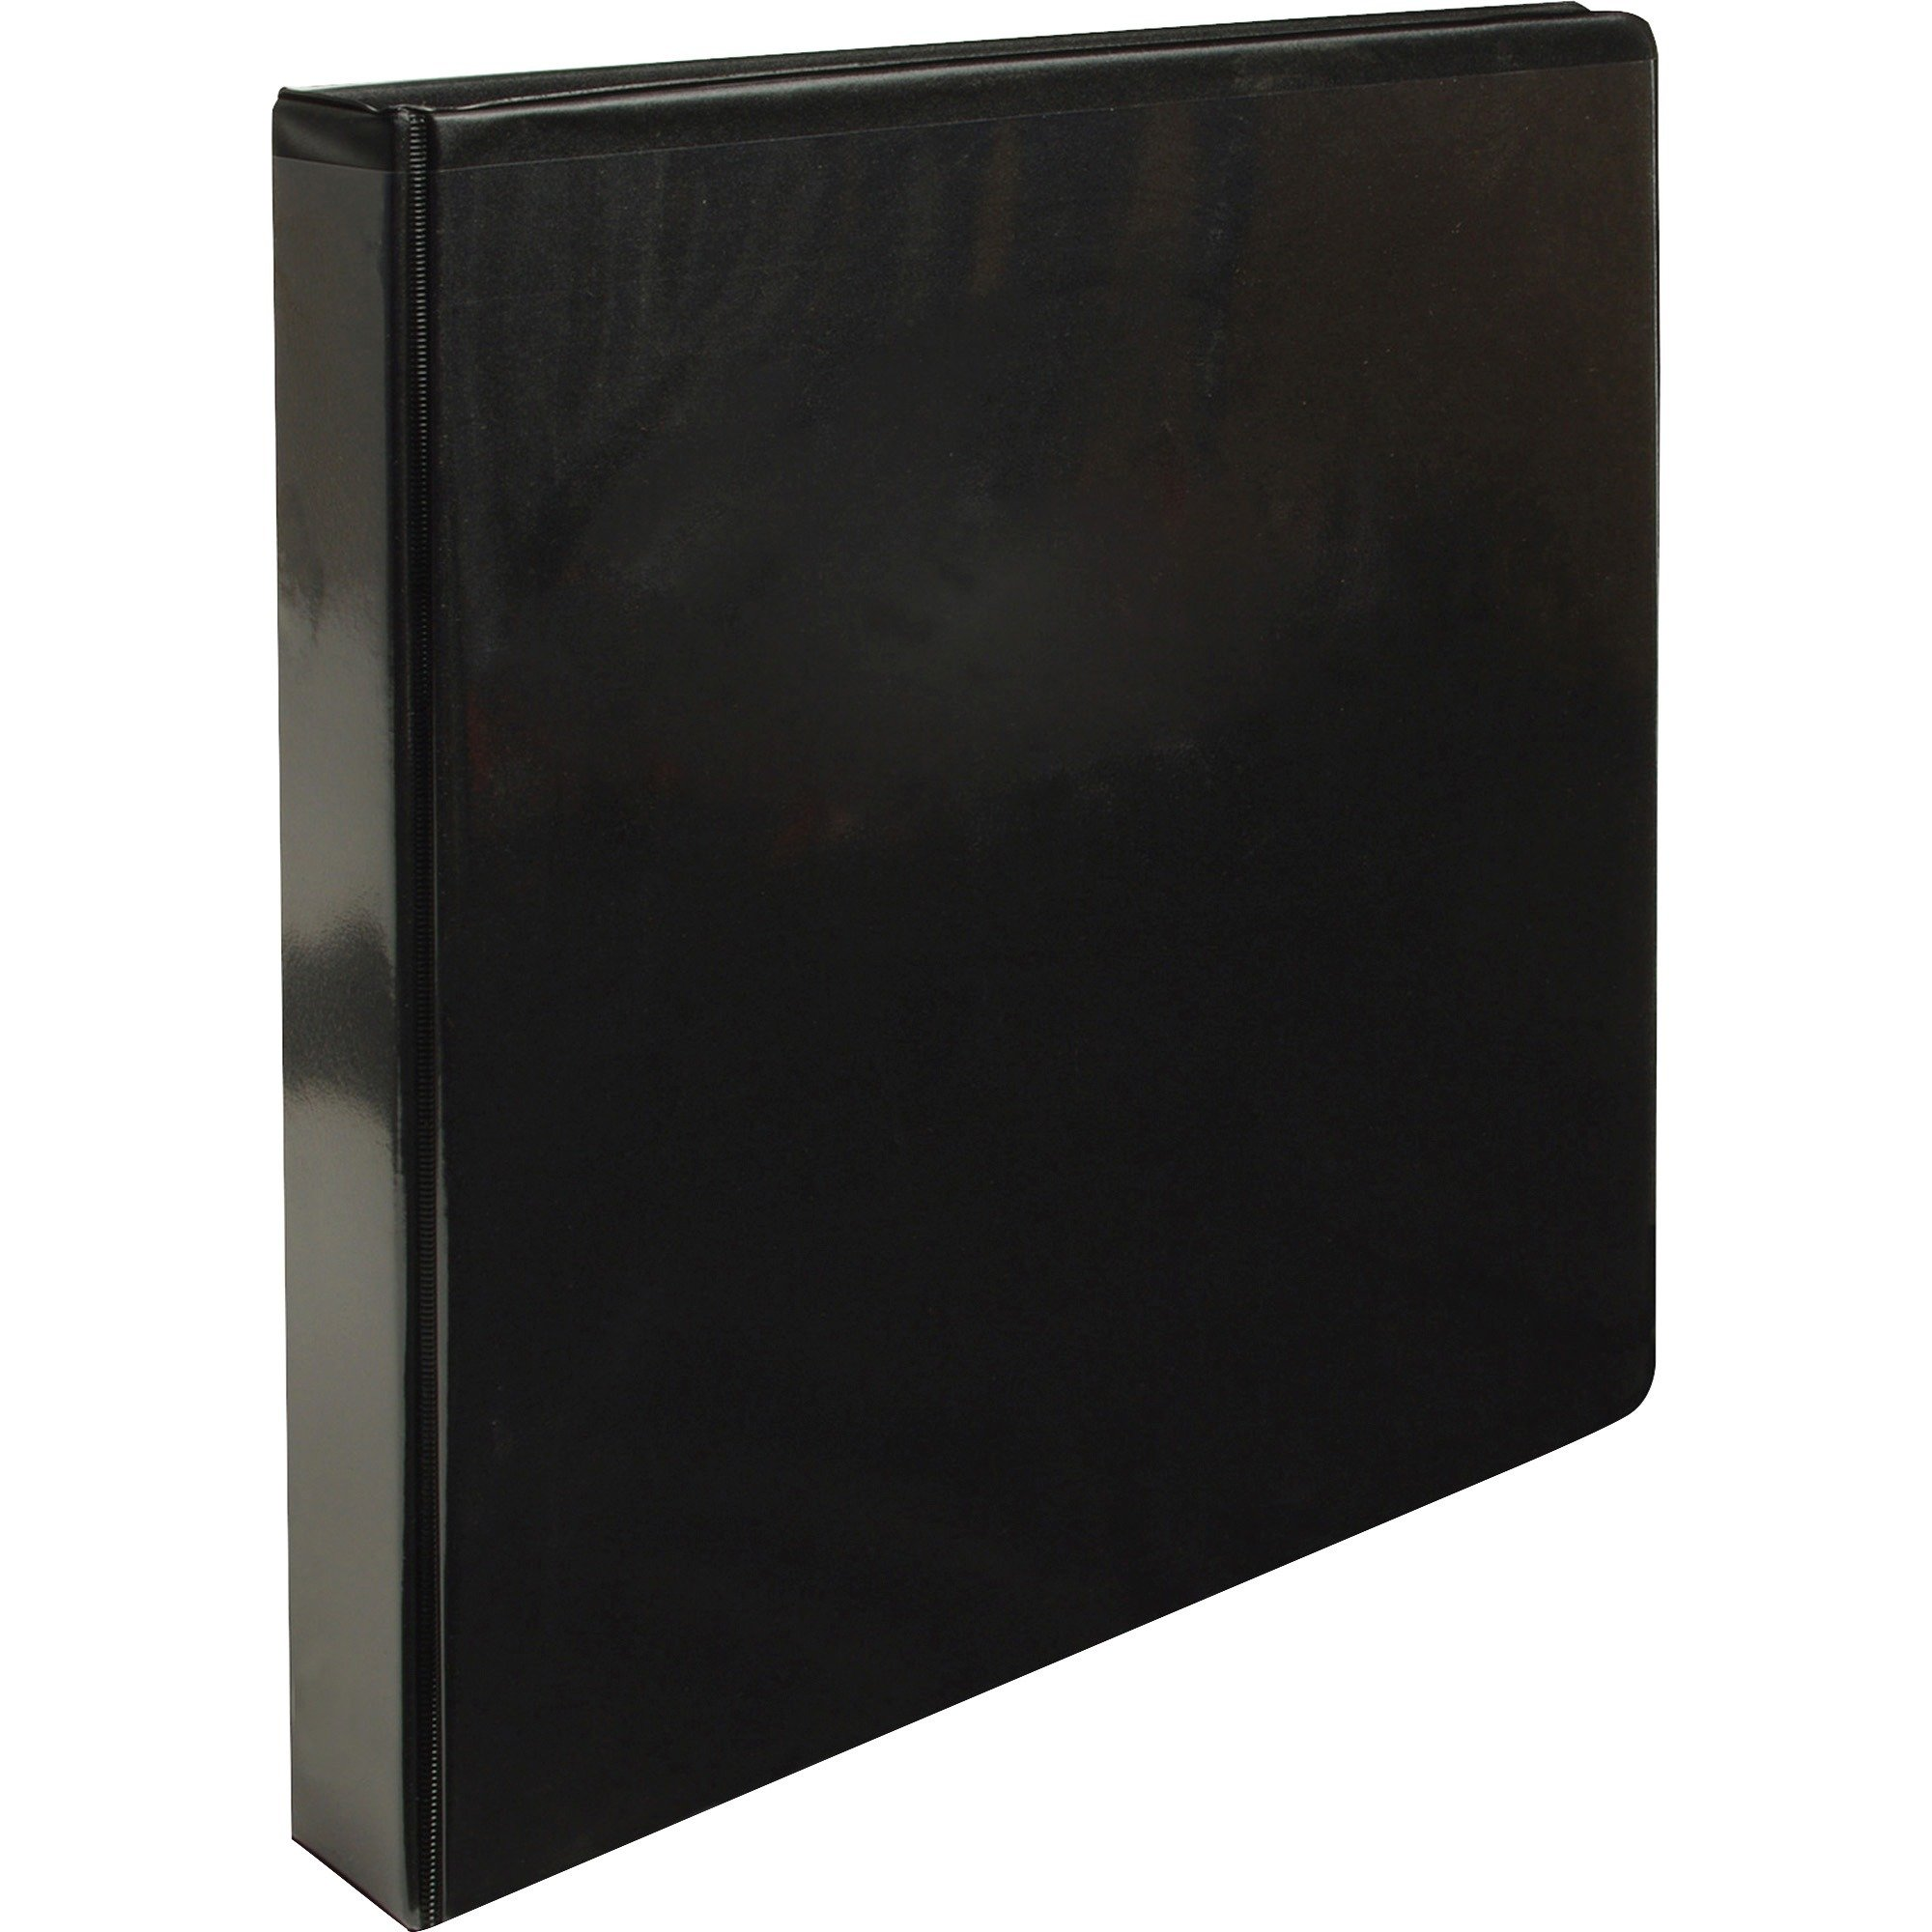 Business Source 09952CT View Binder, w/2 Inside Pockets, 1'' Capacity, 12/CT, Black by Business Source (Image #1)